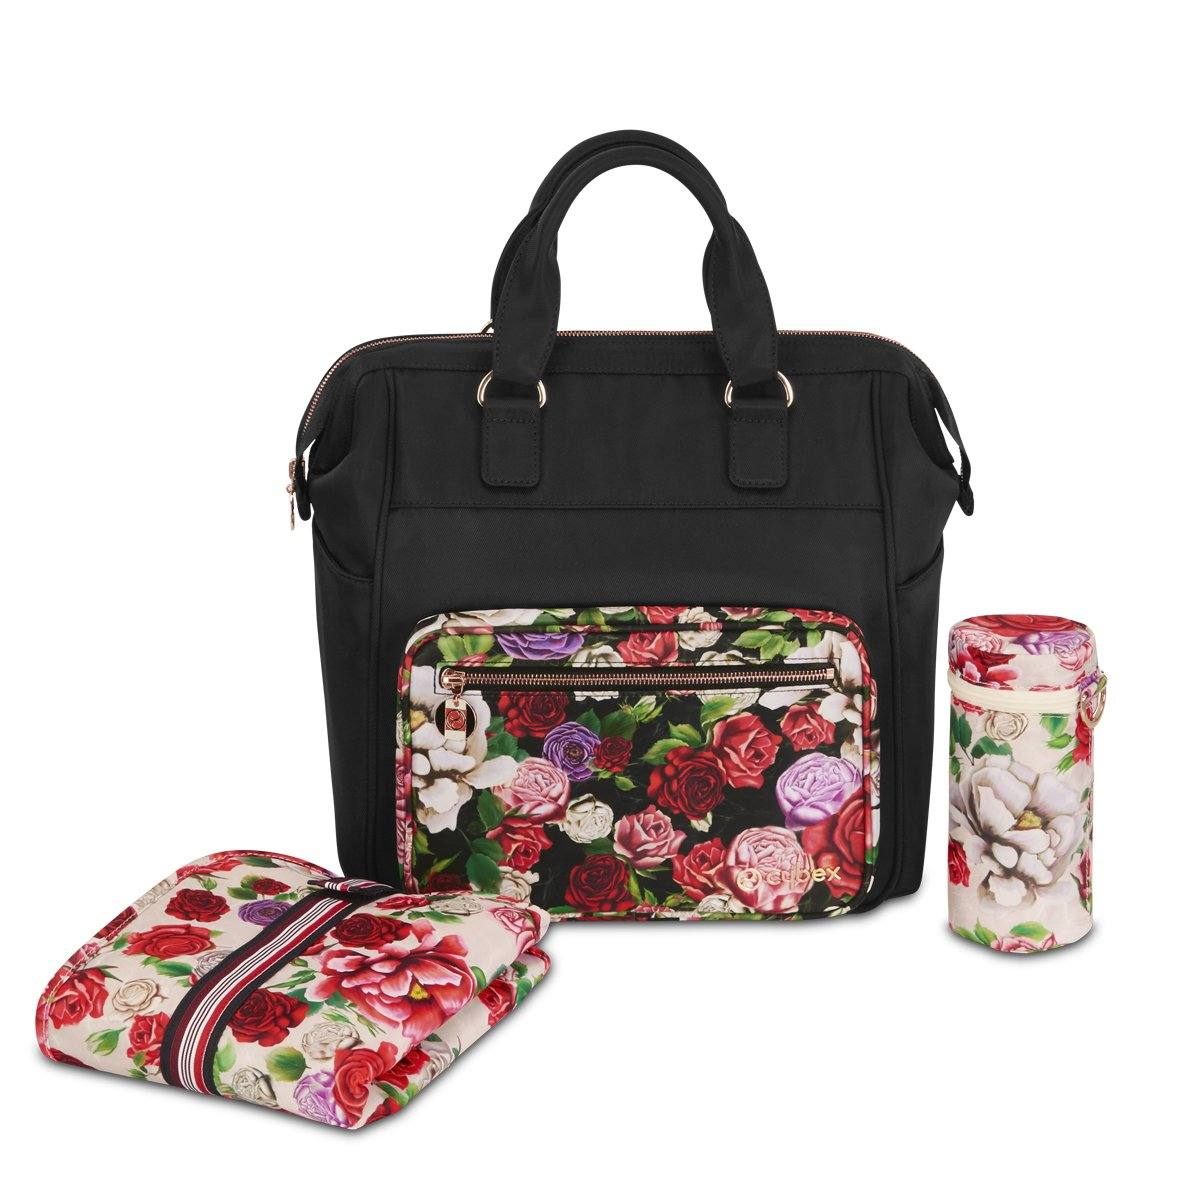 Cybex Platinum Changing Bag - Spring Blossom Dark